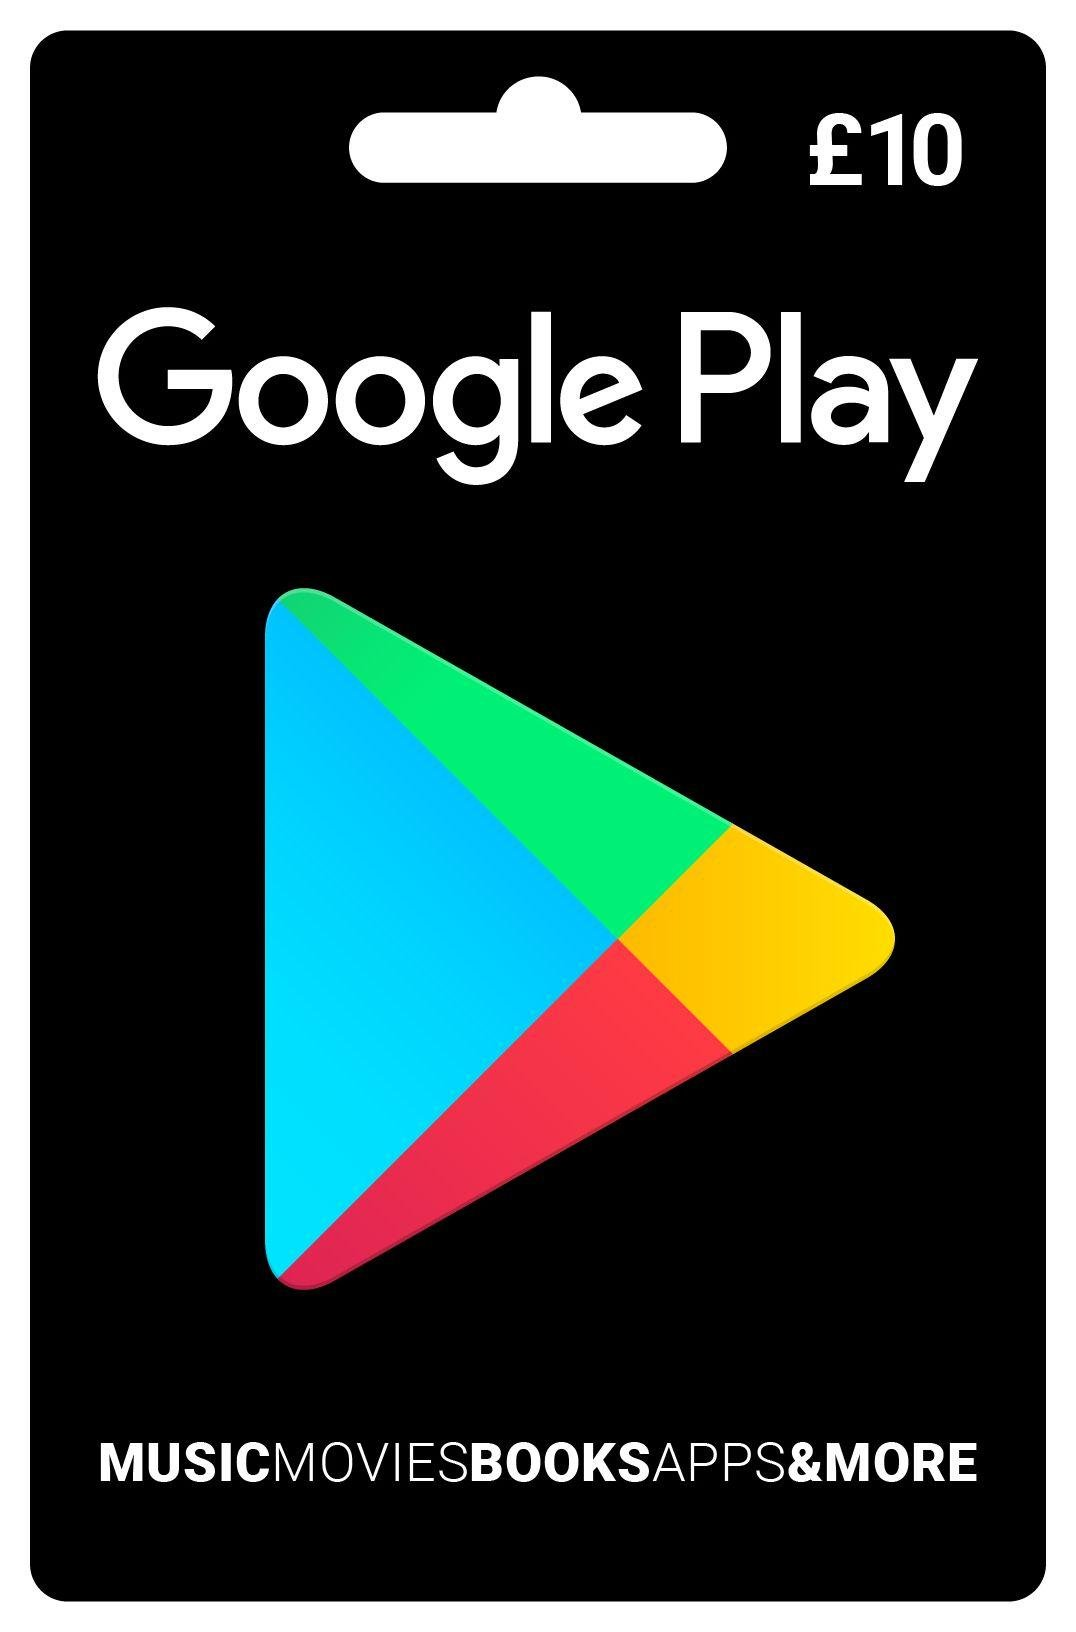 Image of 10 pounds Google Play Voucher